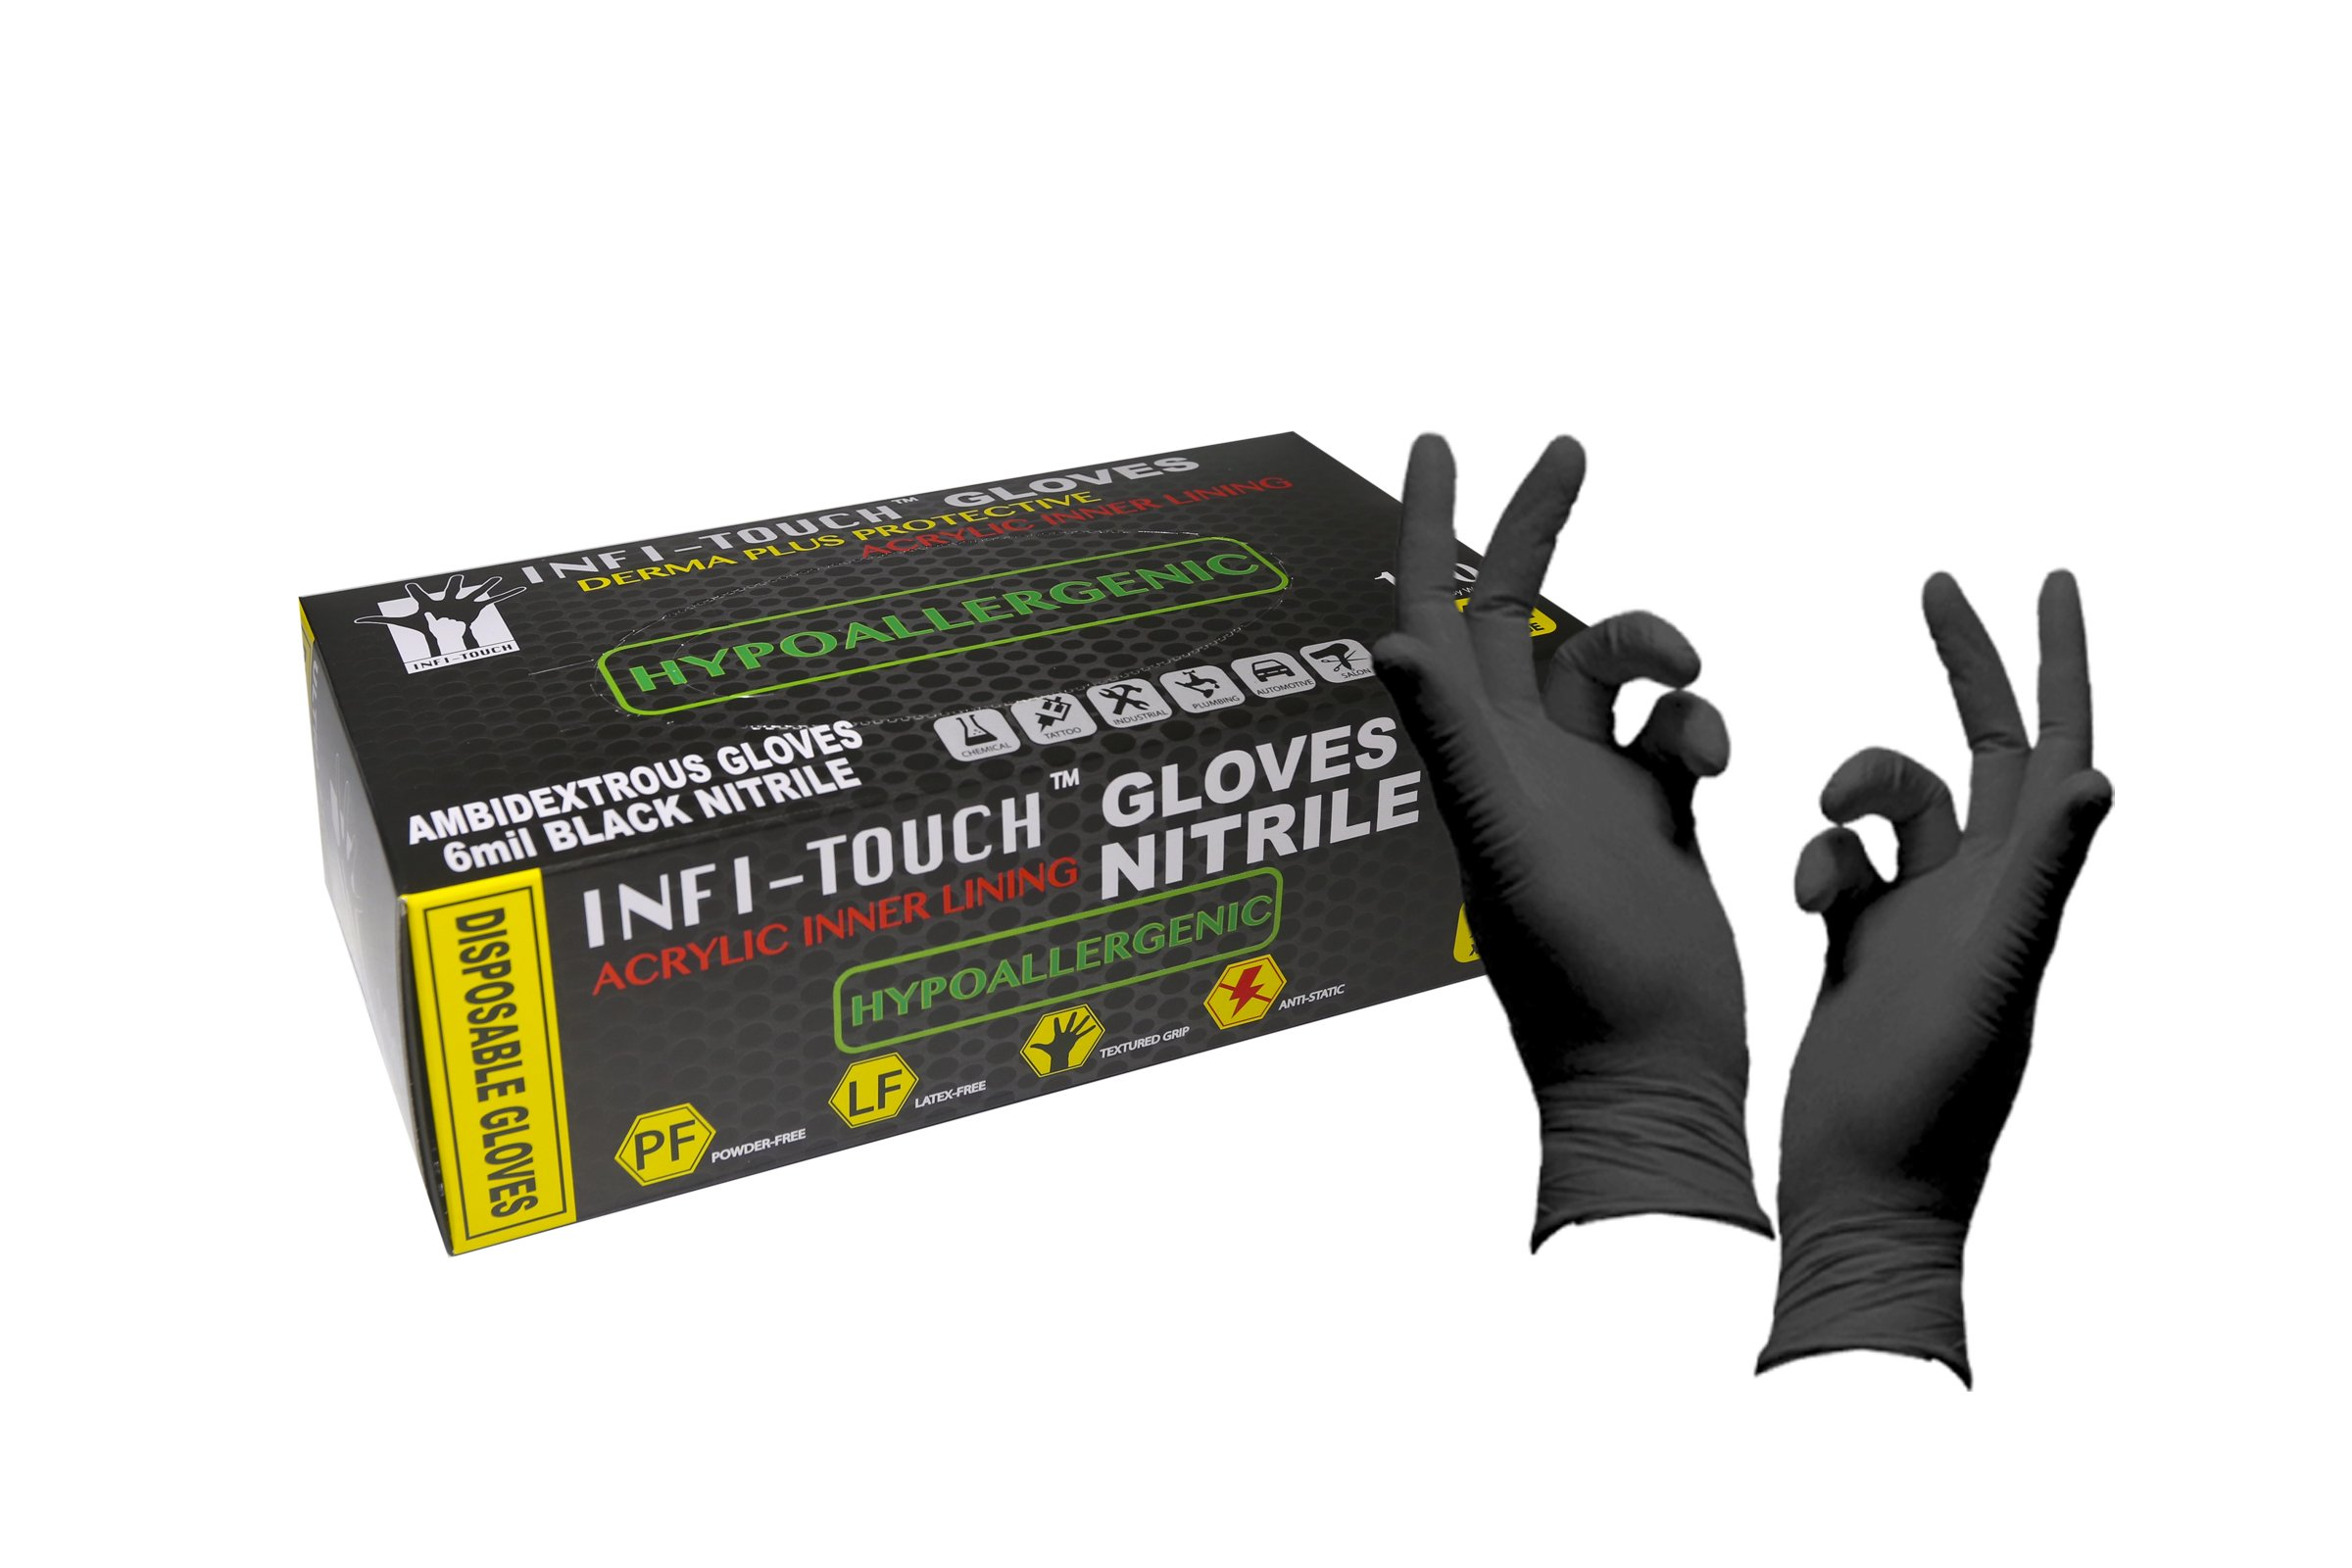 Infi-Touch Heavy Duty, Black Nitrile Gloves, 9.5'' Length, Powder Free, Hypoallergenic, 6 Mil Thickness, 100 Count - Medium